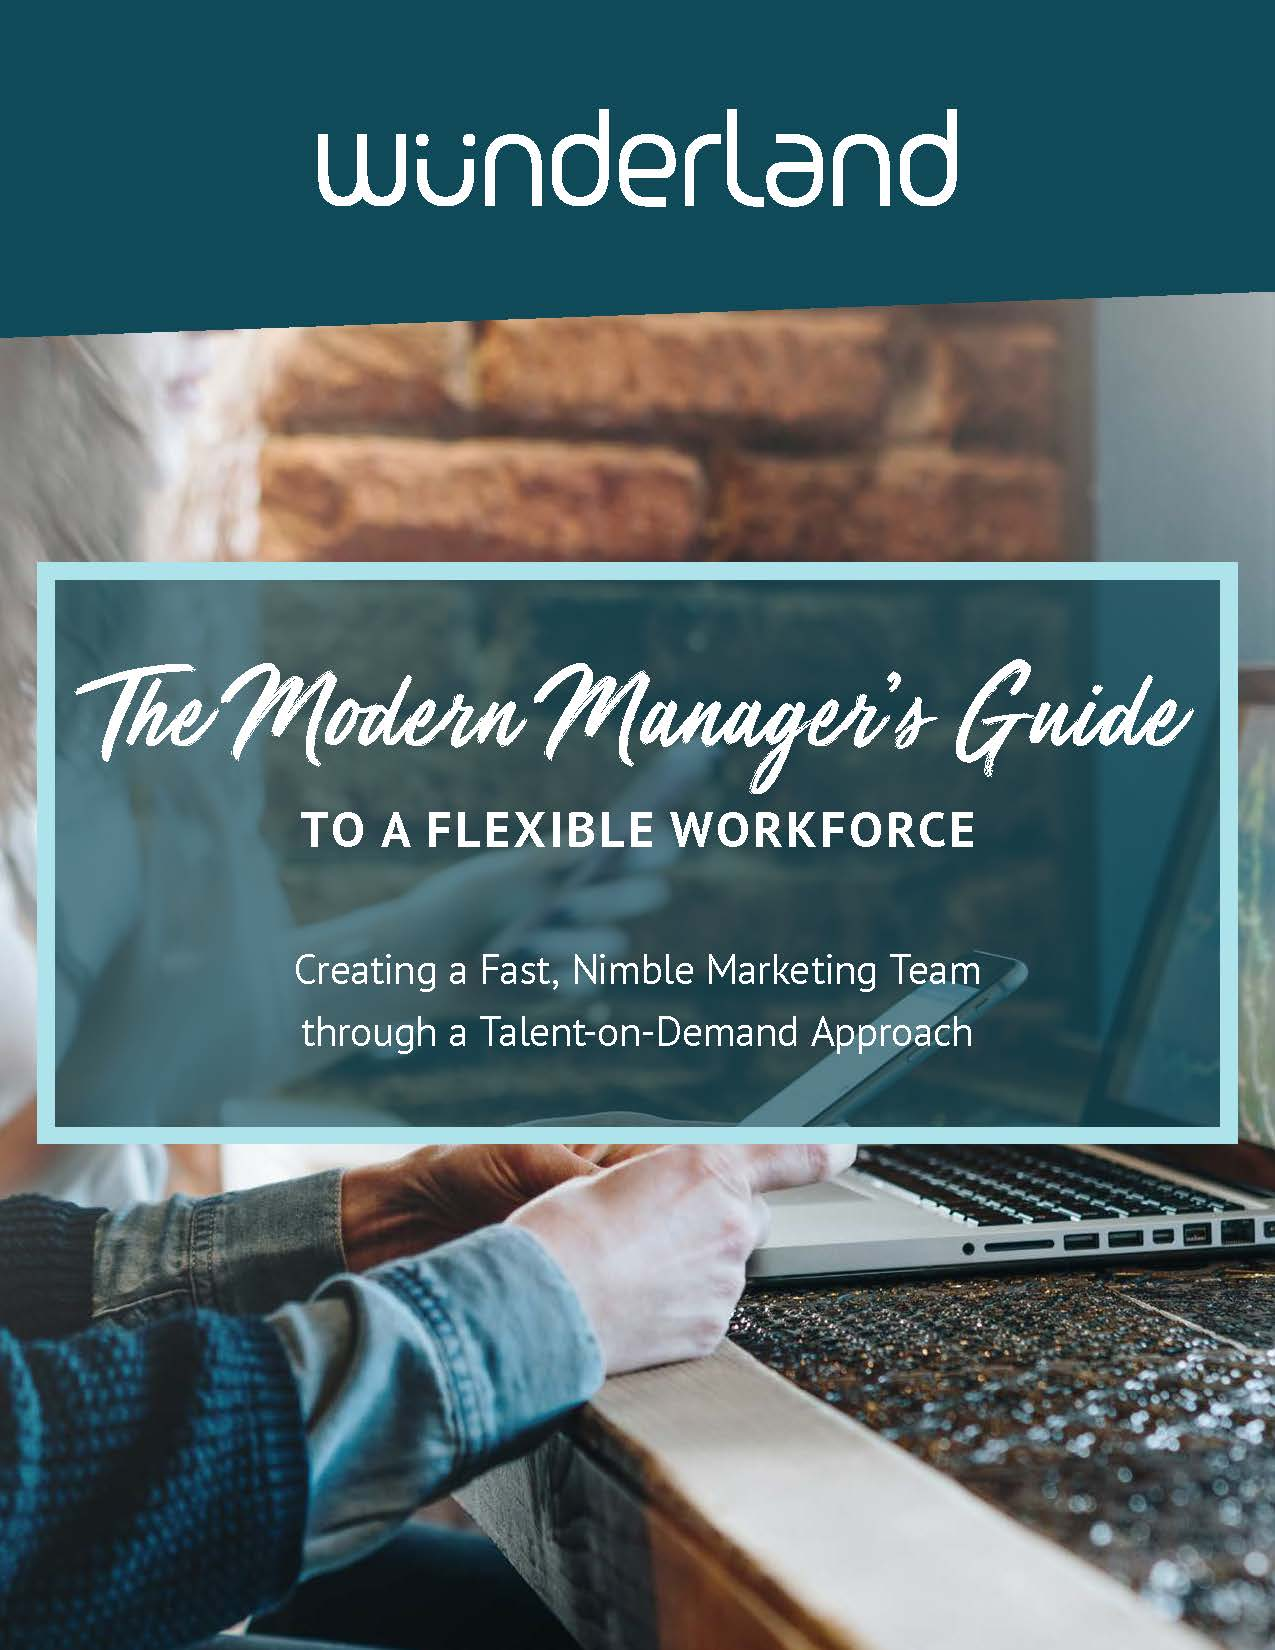 Modern Manager's Guide to Flexible Workforce_WunderLand_Page_01